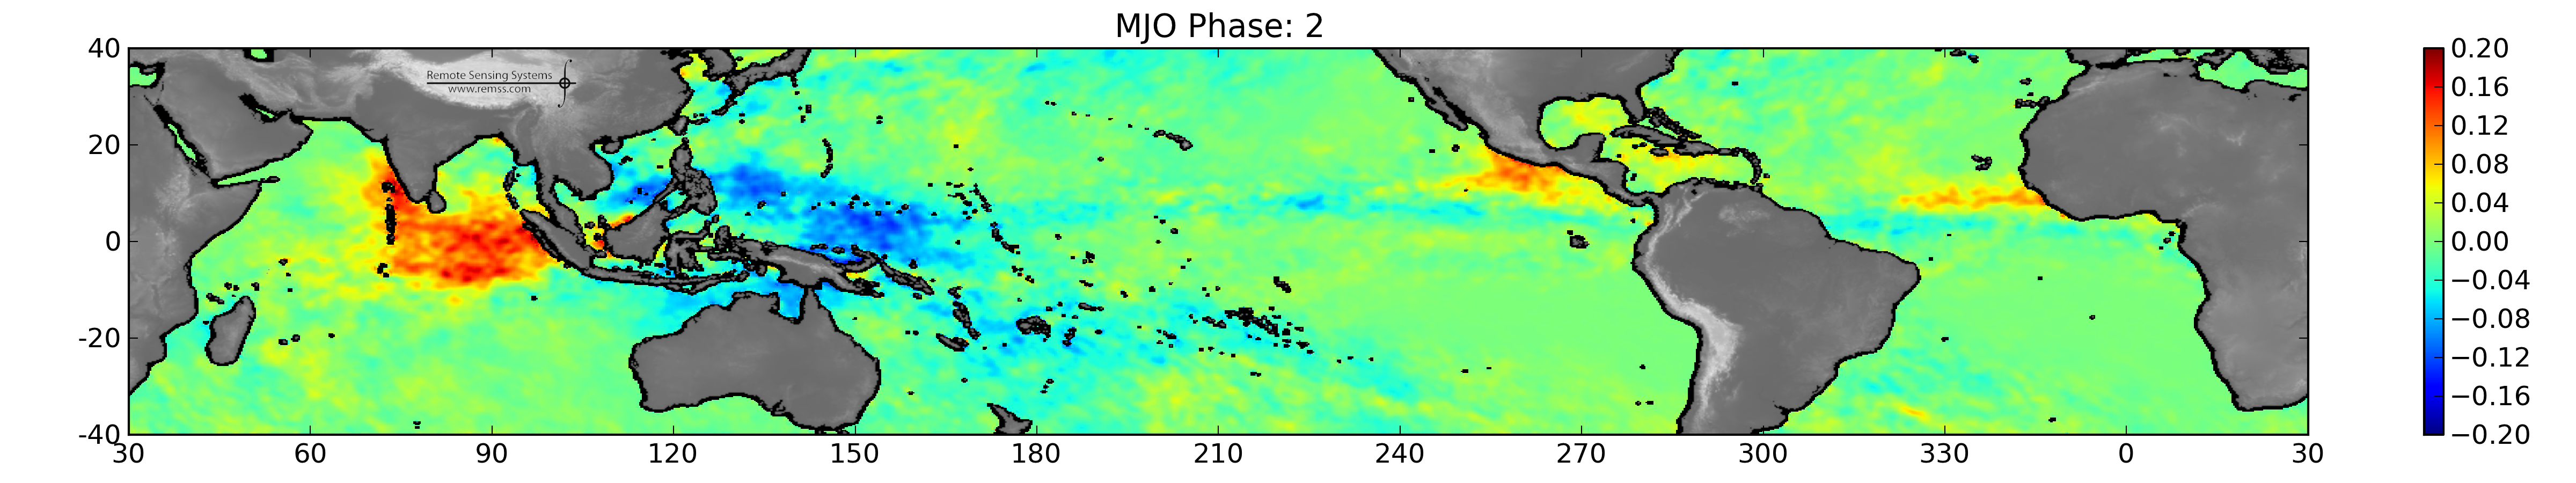 Figure 2.  Precipitation anomaly for MJO phases 2 (top), 4 (center), and 6 (bottom).  These images were made from RSS daily merged rain rate.